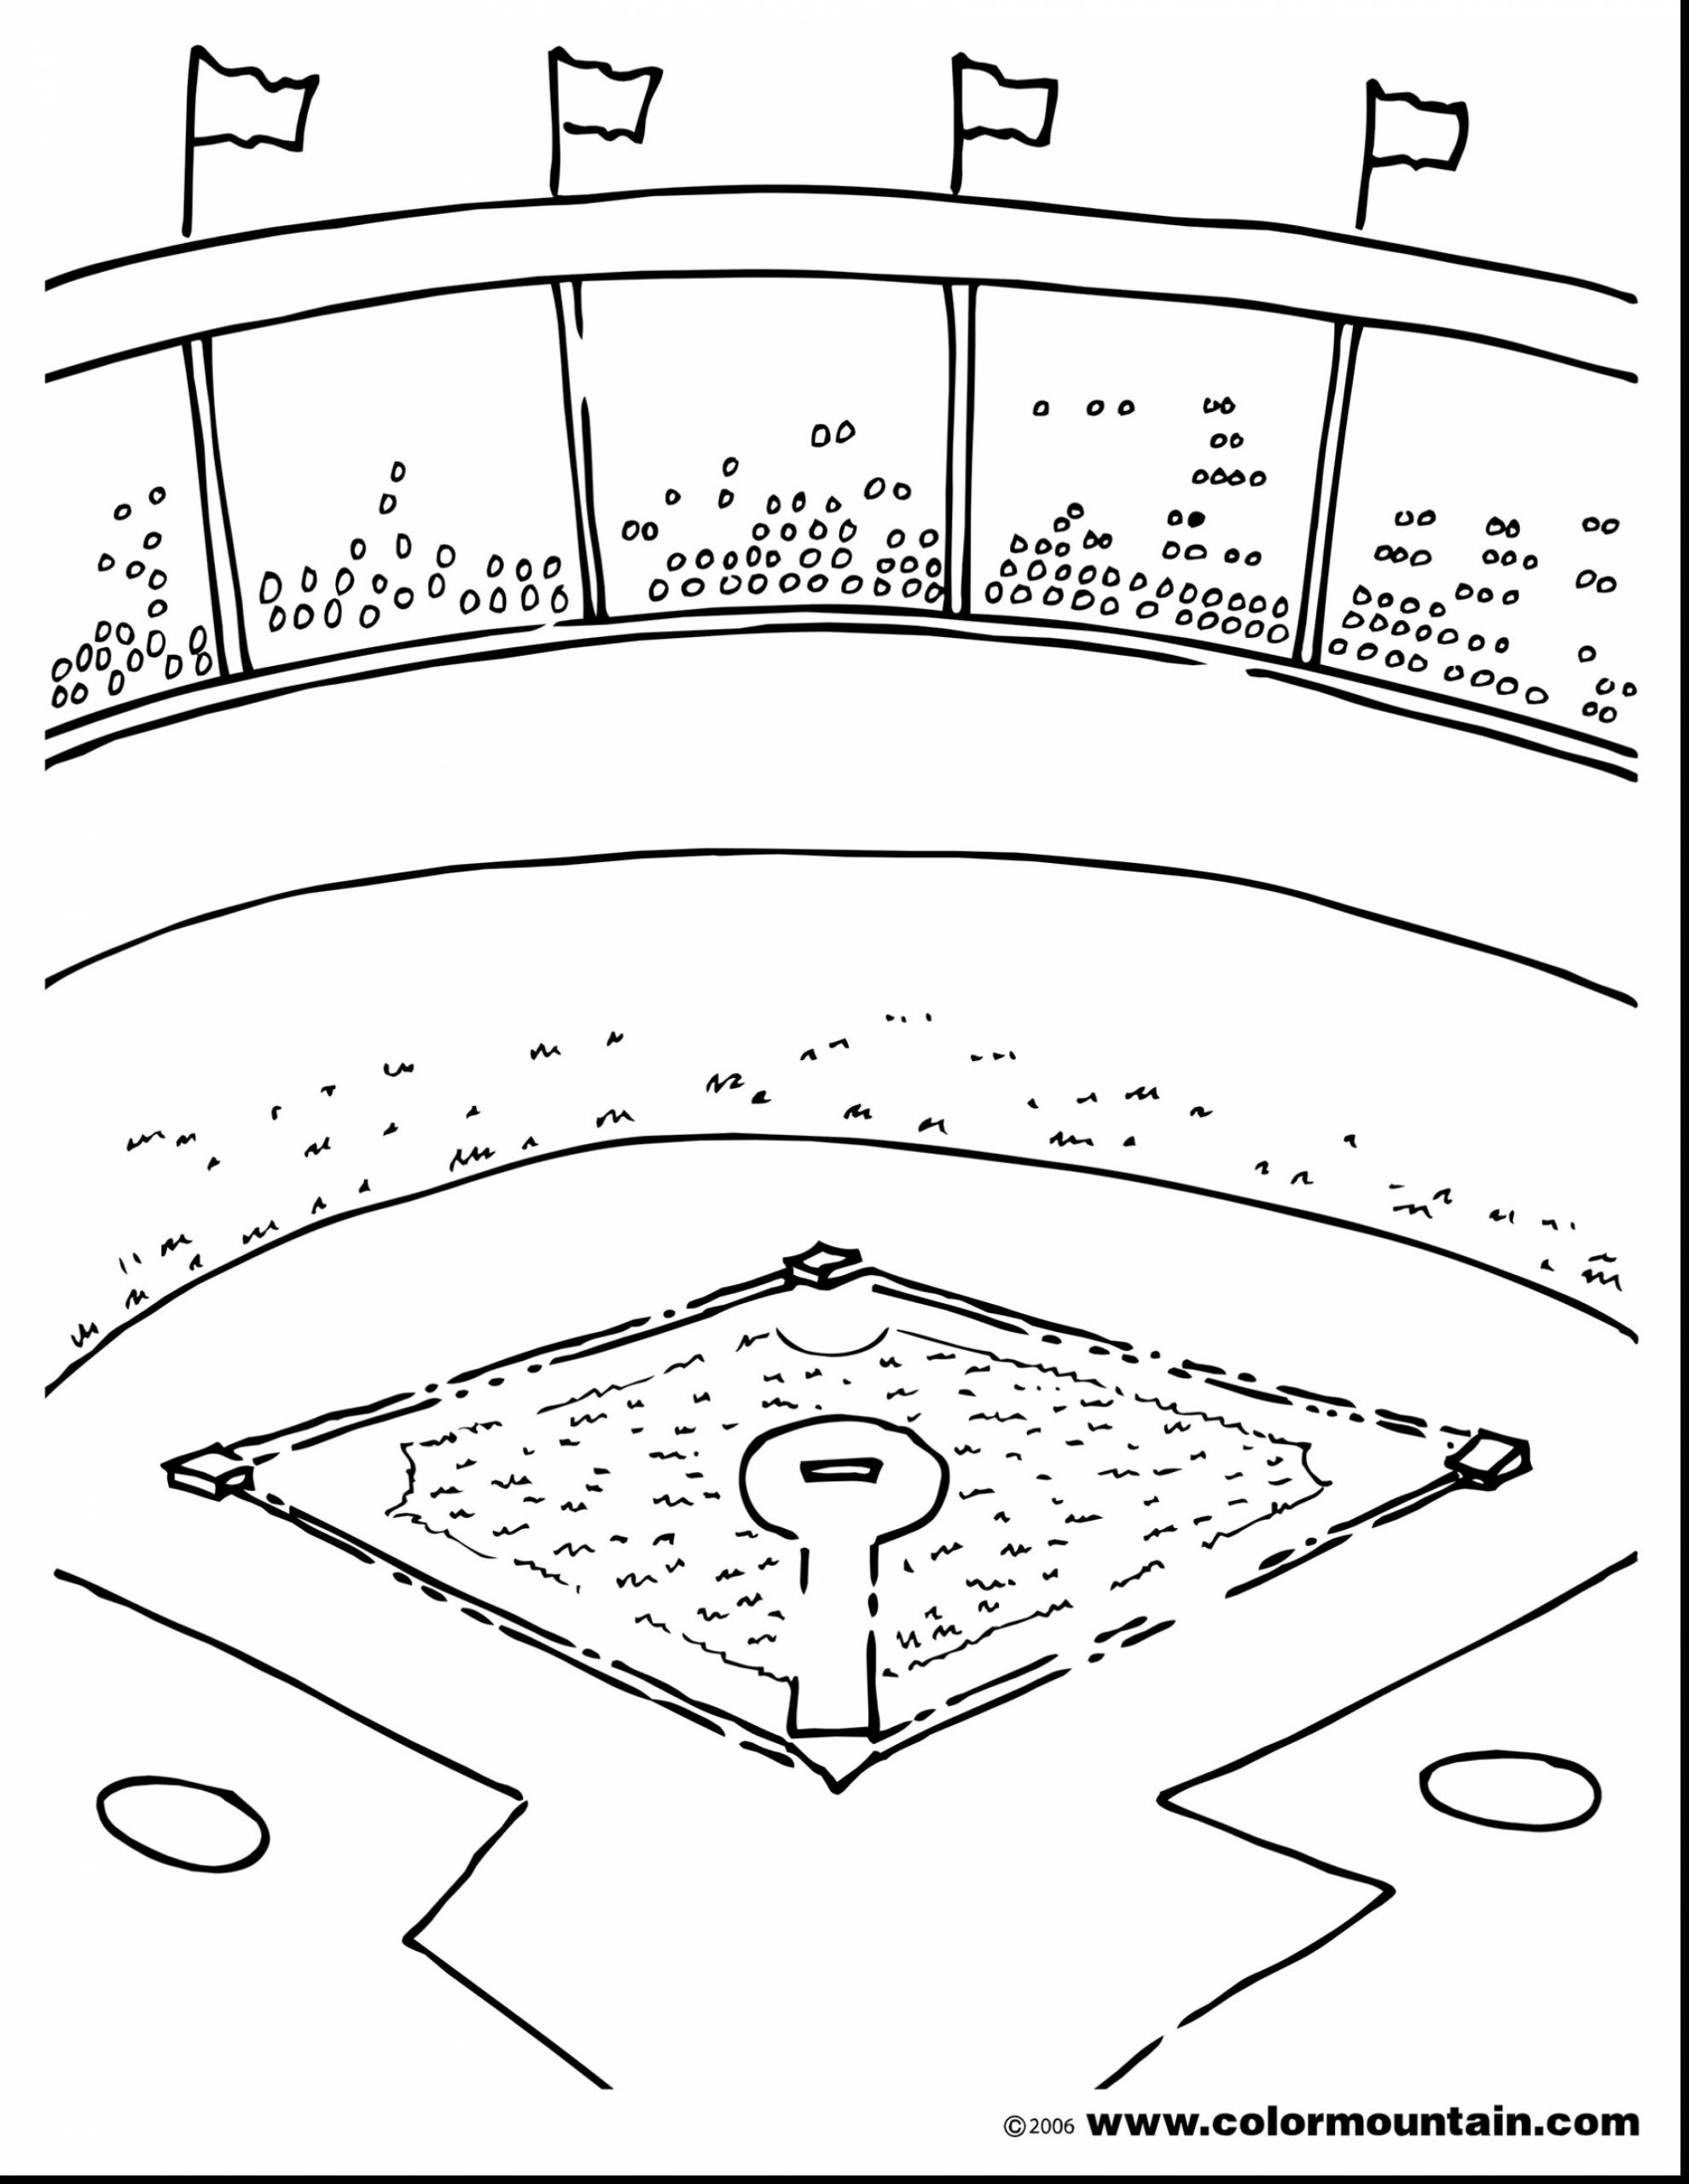 Softball Coloring Pages Printable At Getdrawings